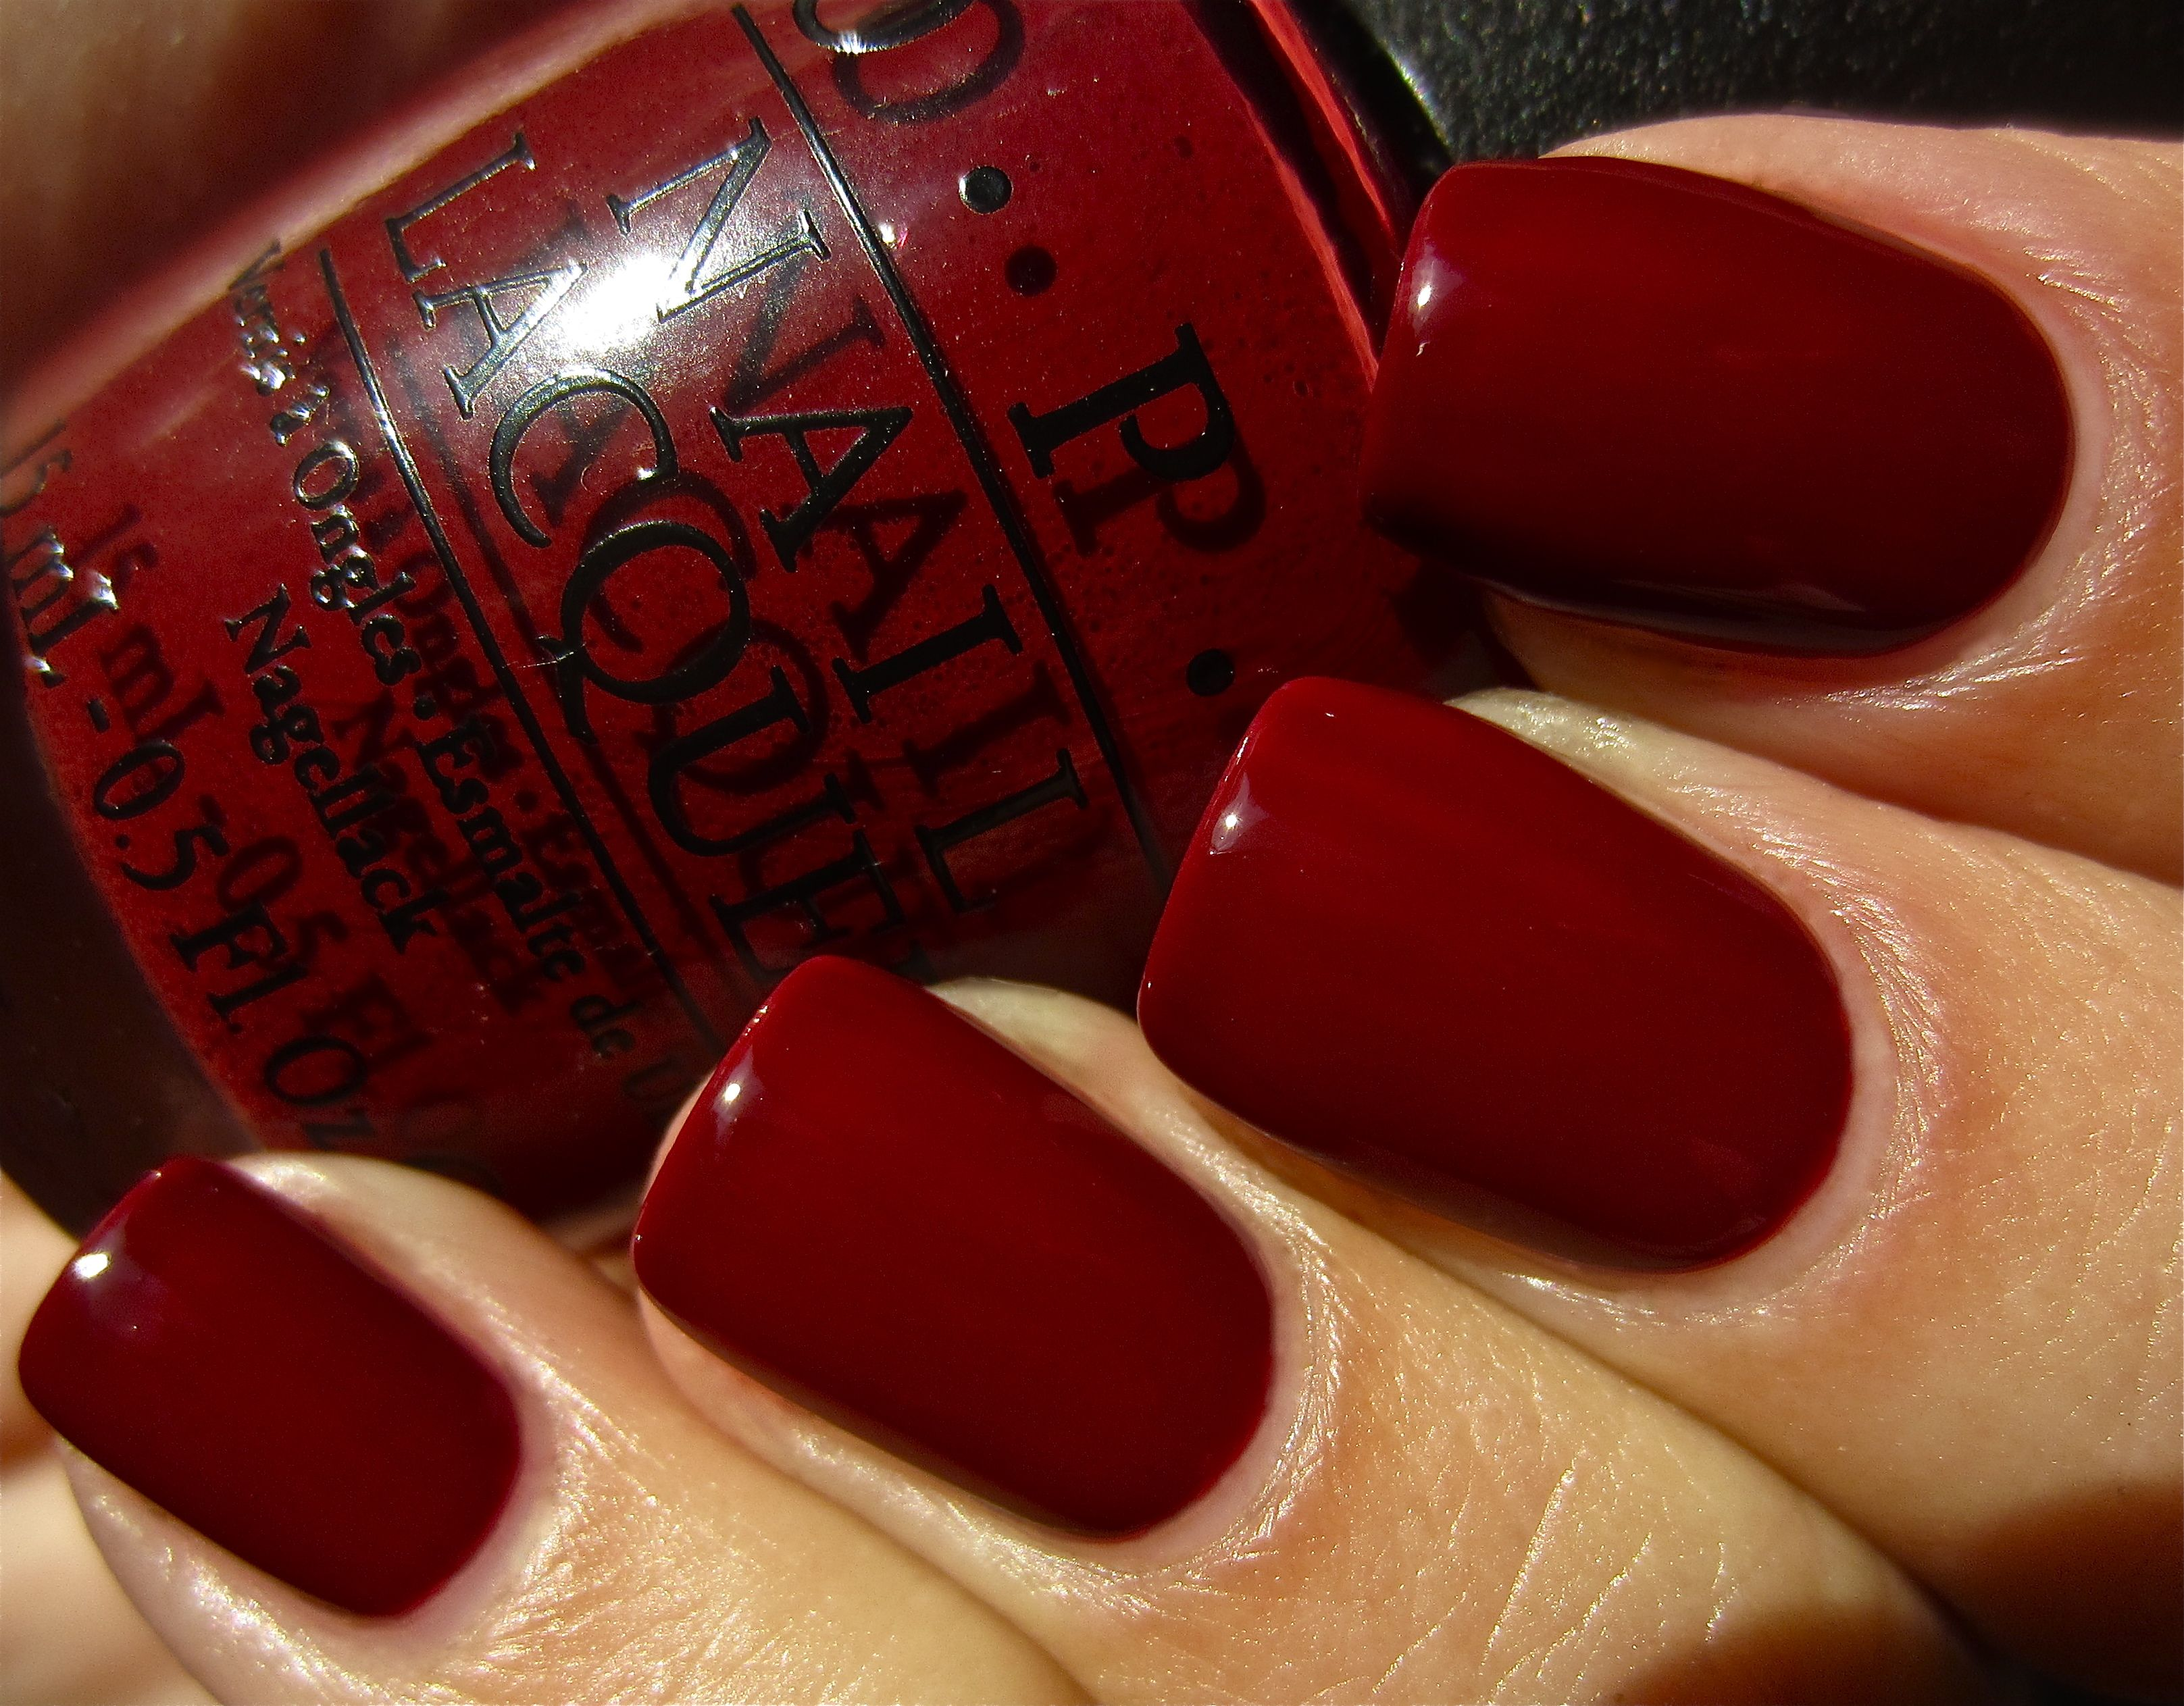 Opi Skyfall Collection Holiday 2012 Part 1 Swatches Review Nail Polish Oxblood Nails Nails